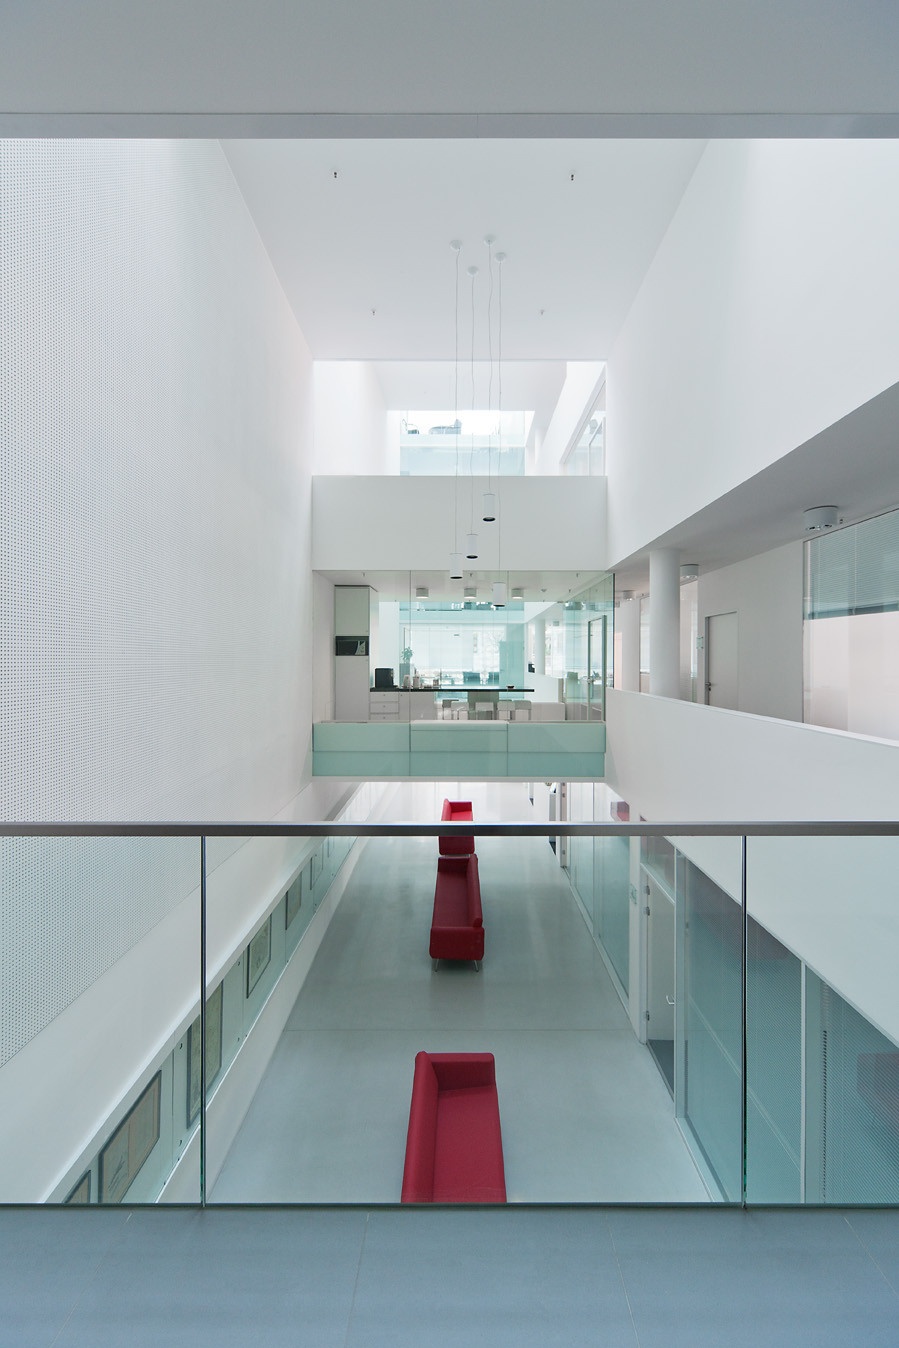 Gallery of vibrant geometry 3h architecture ltd 4 for Architect ltd